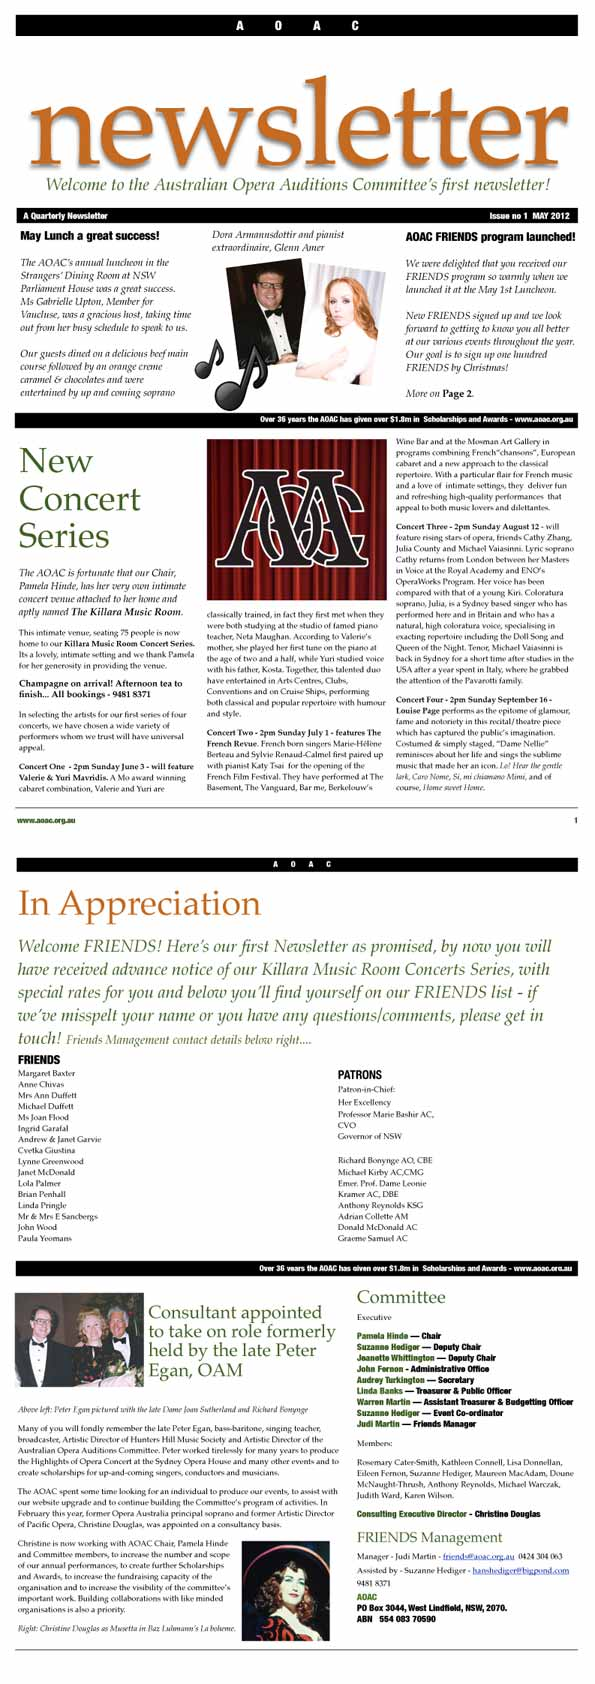 AOAC May 2012 Newsletter